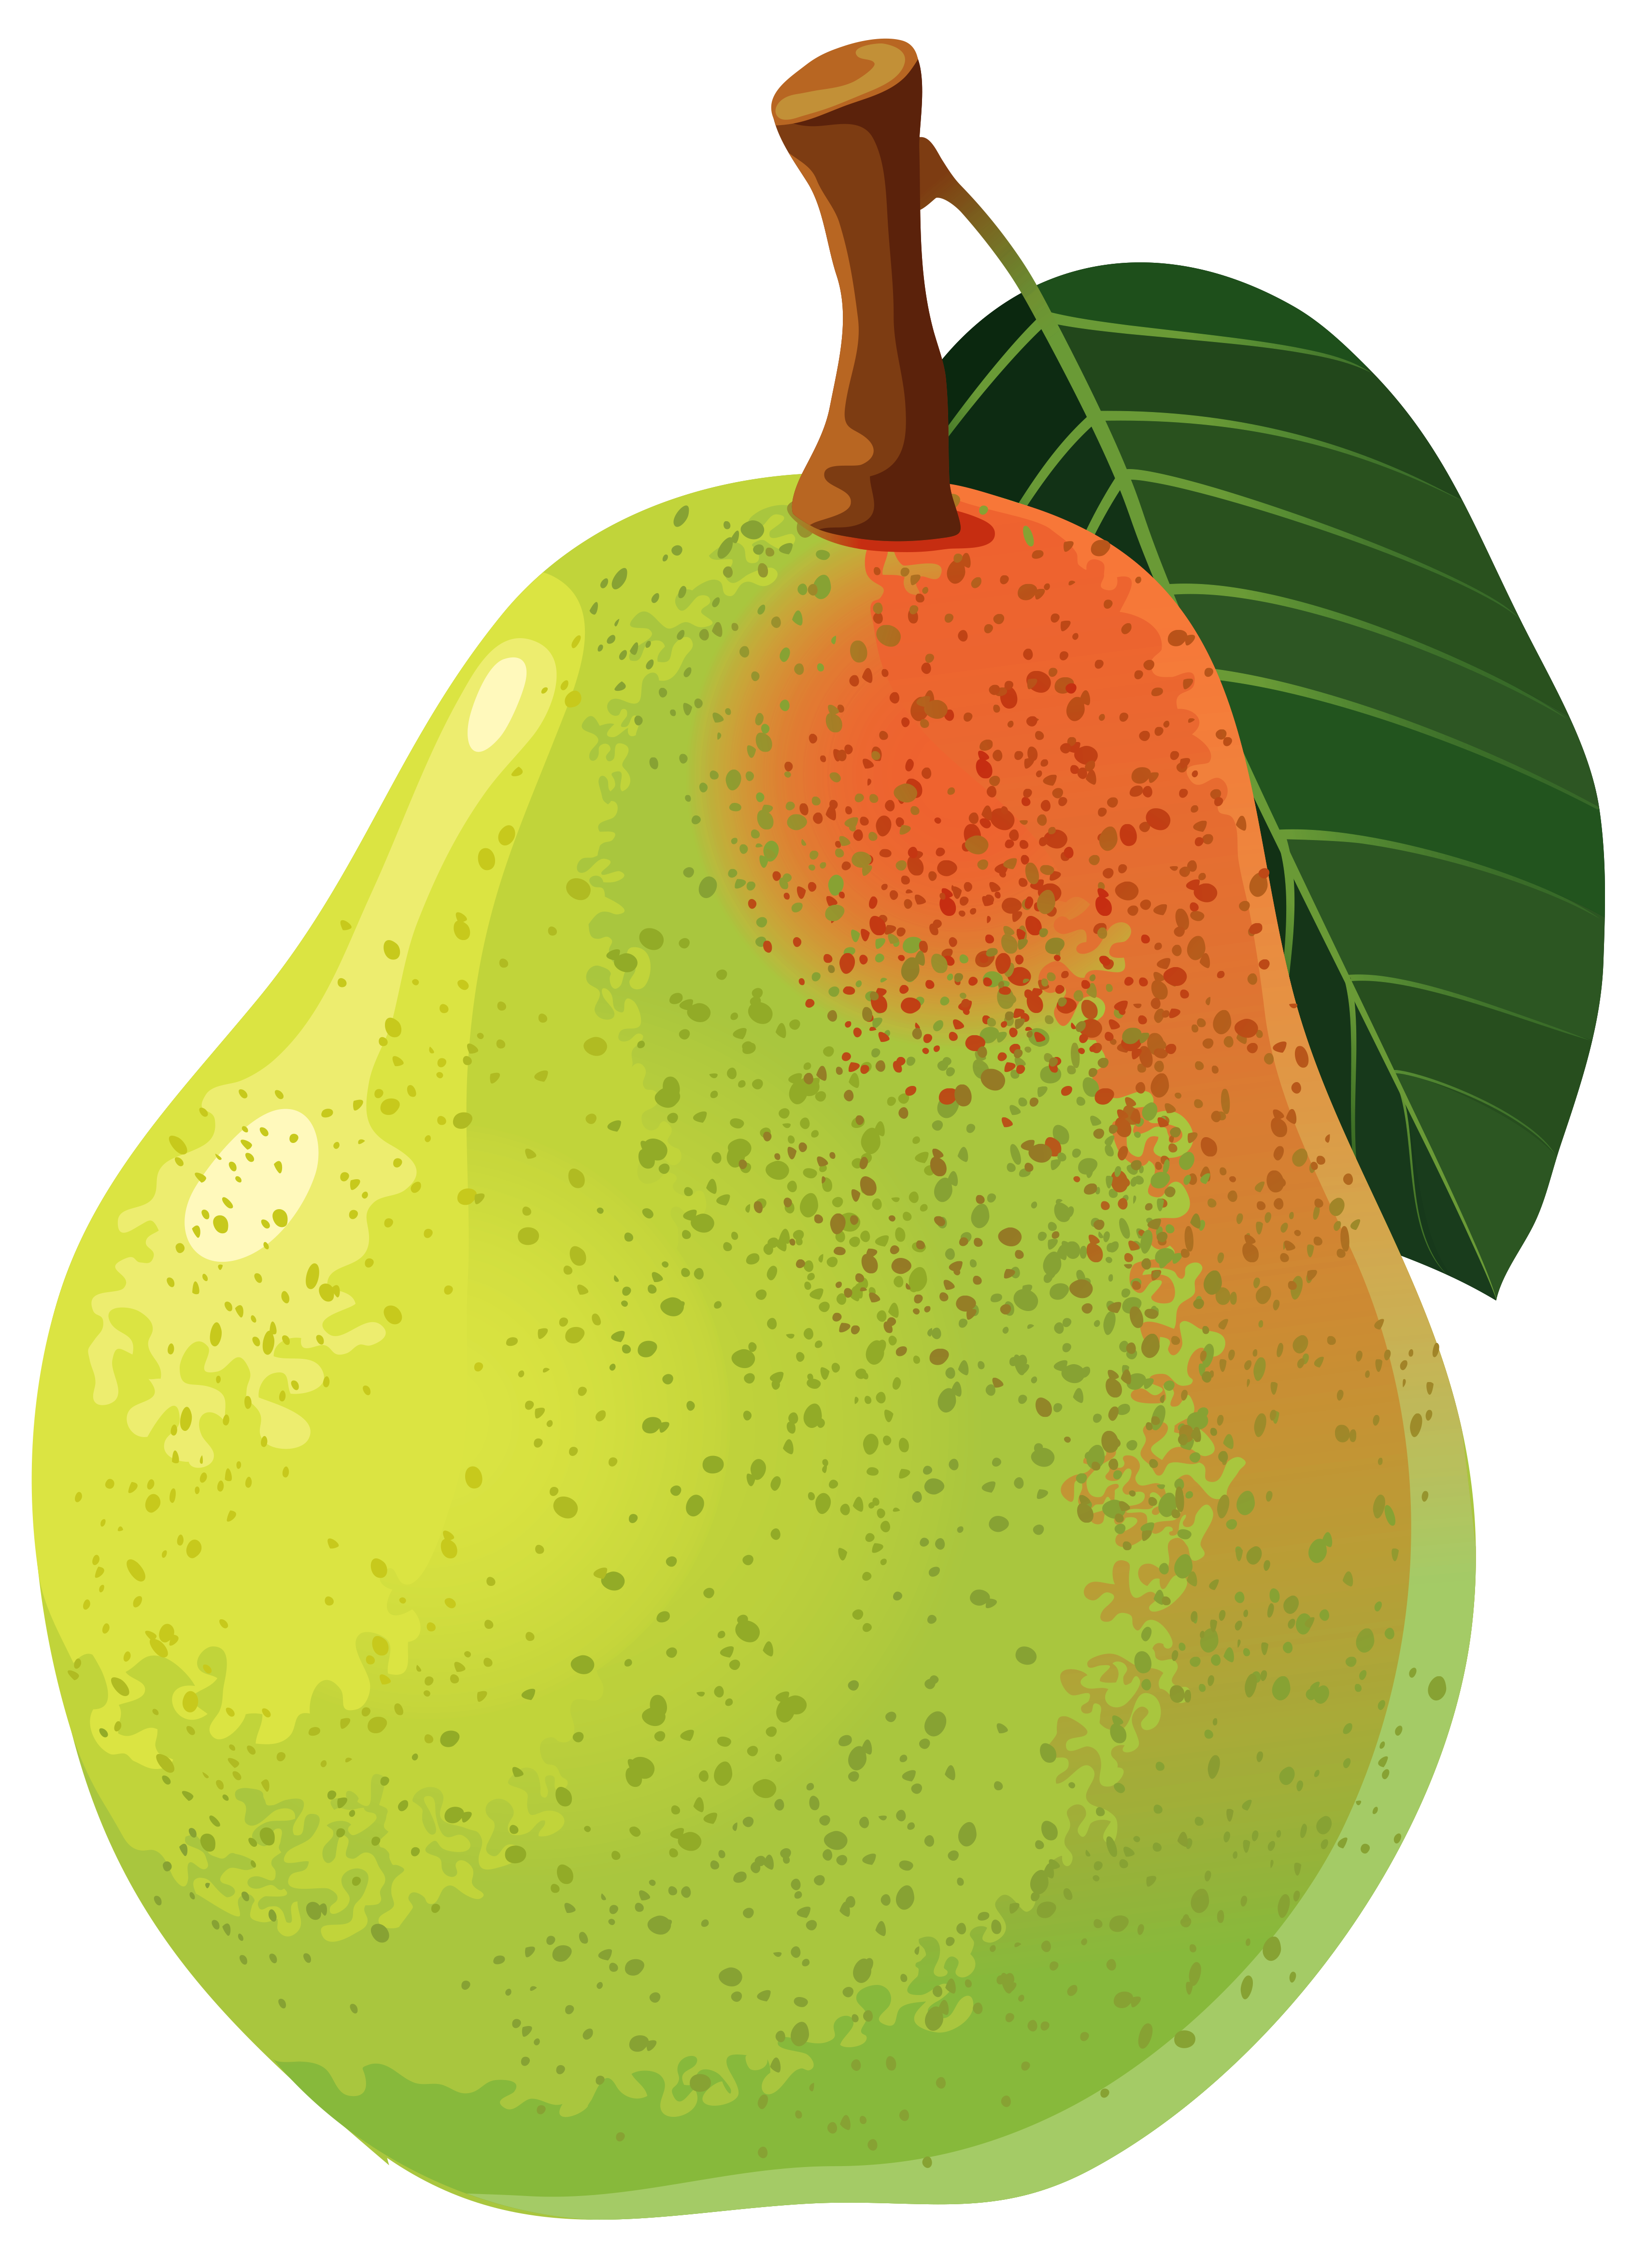 Face clipart pear. Png vector image clip